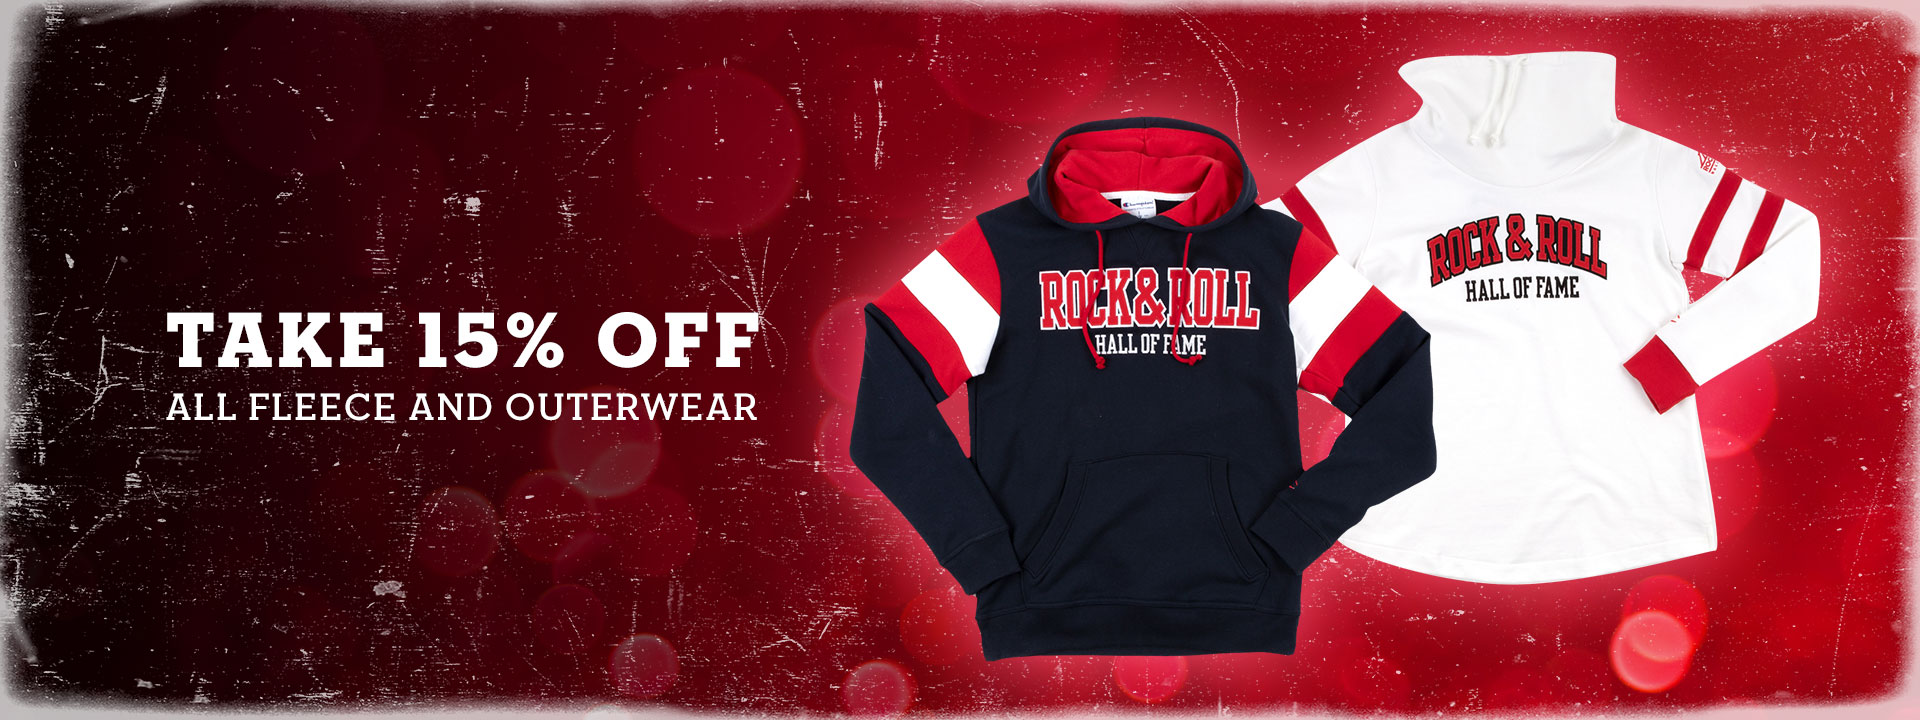 TAKE 15% OFF ALL FLEECE AND OUTERWEAR